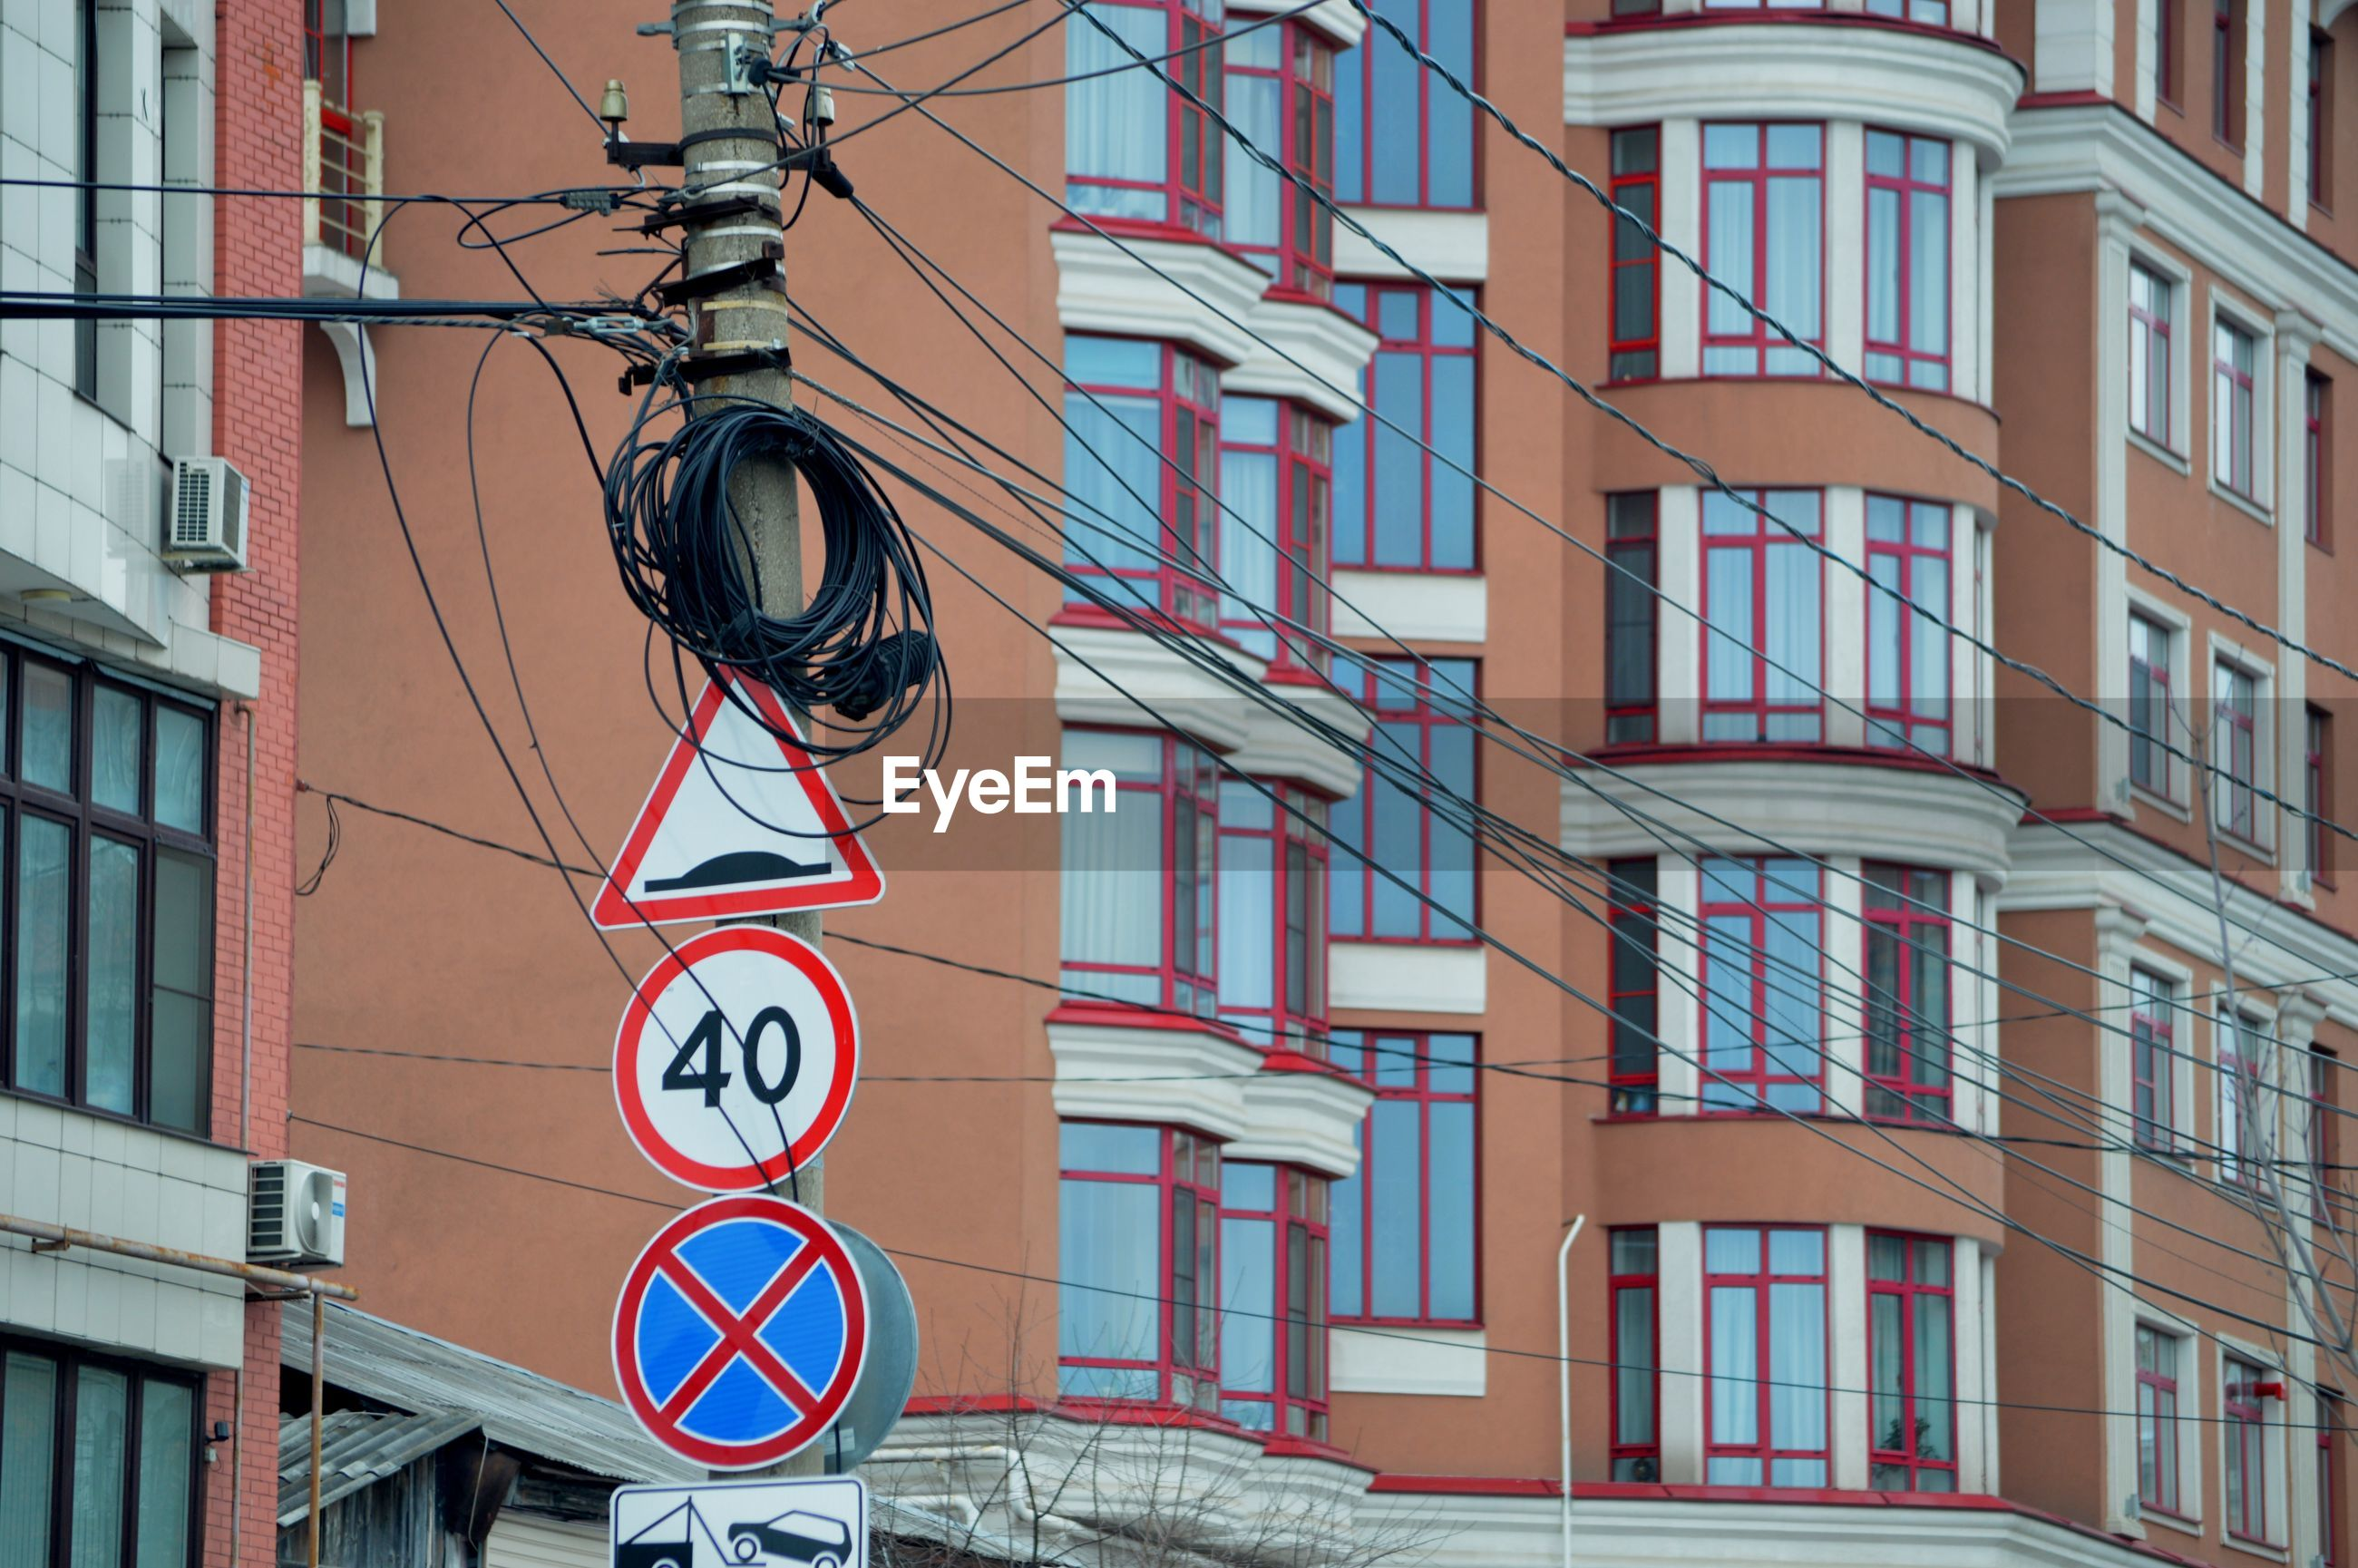 Low angle view of road sign against buildings in city